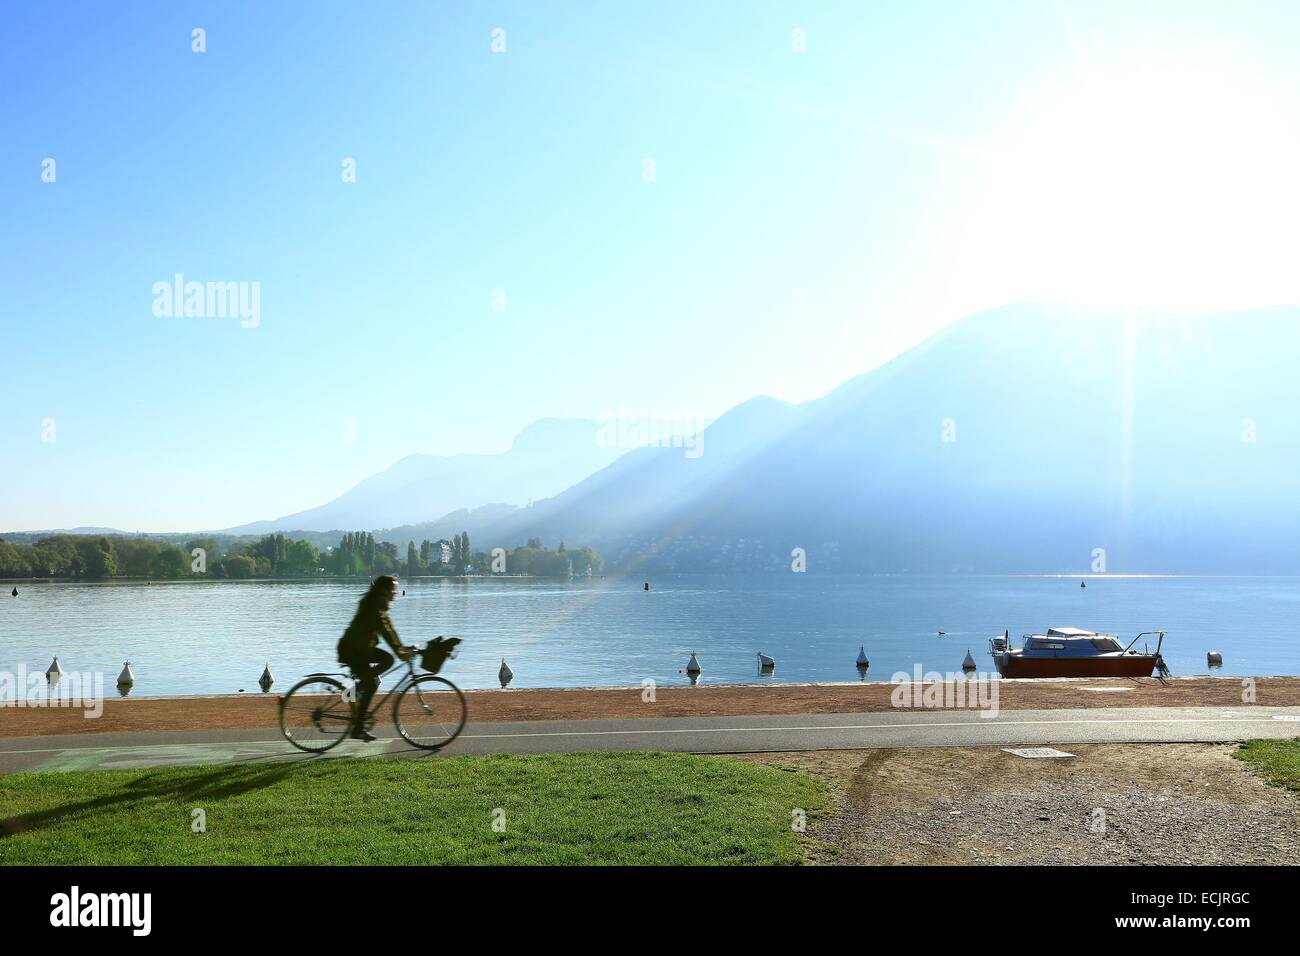 France, Haute Savoie, Annecy, dock the Spinner on the shores of Lake Annecy - Stock Image